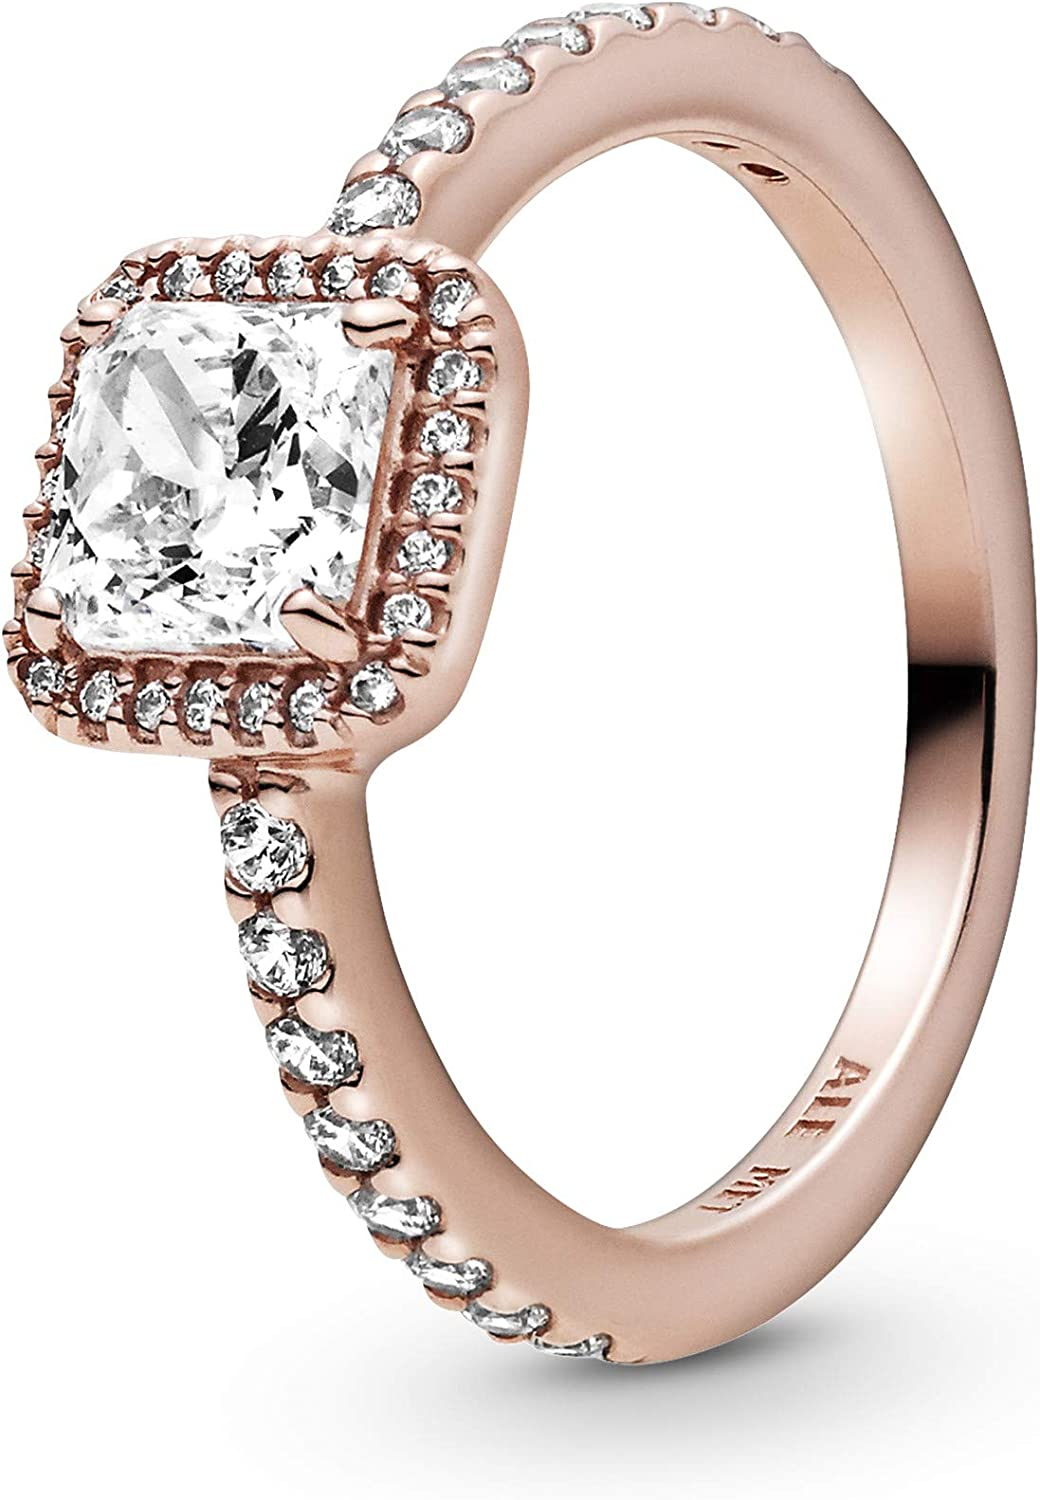 Pandora Jewelry Square In stock Cubic Max 87% OFF Zirconia Rose Ring in